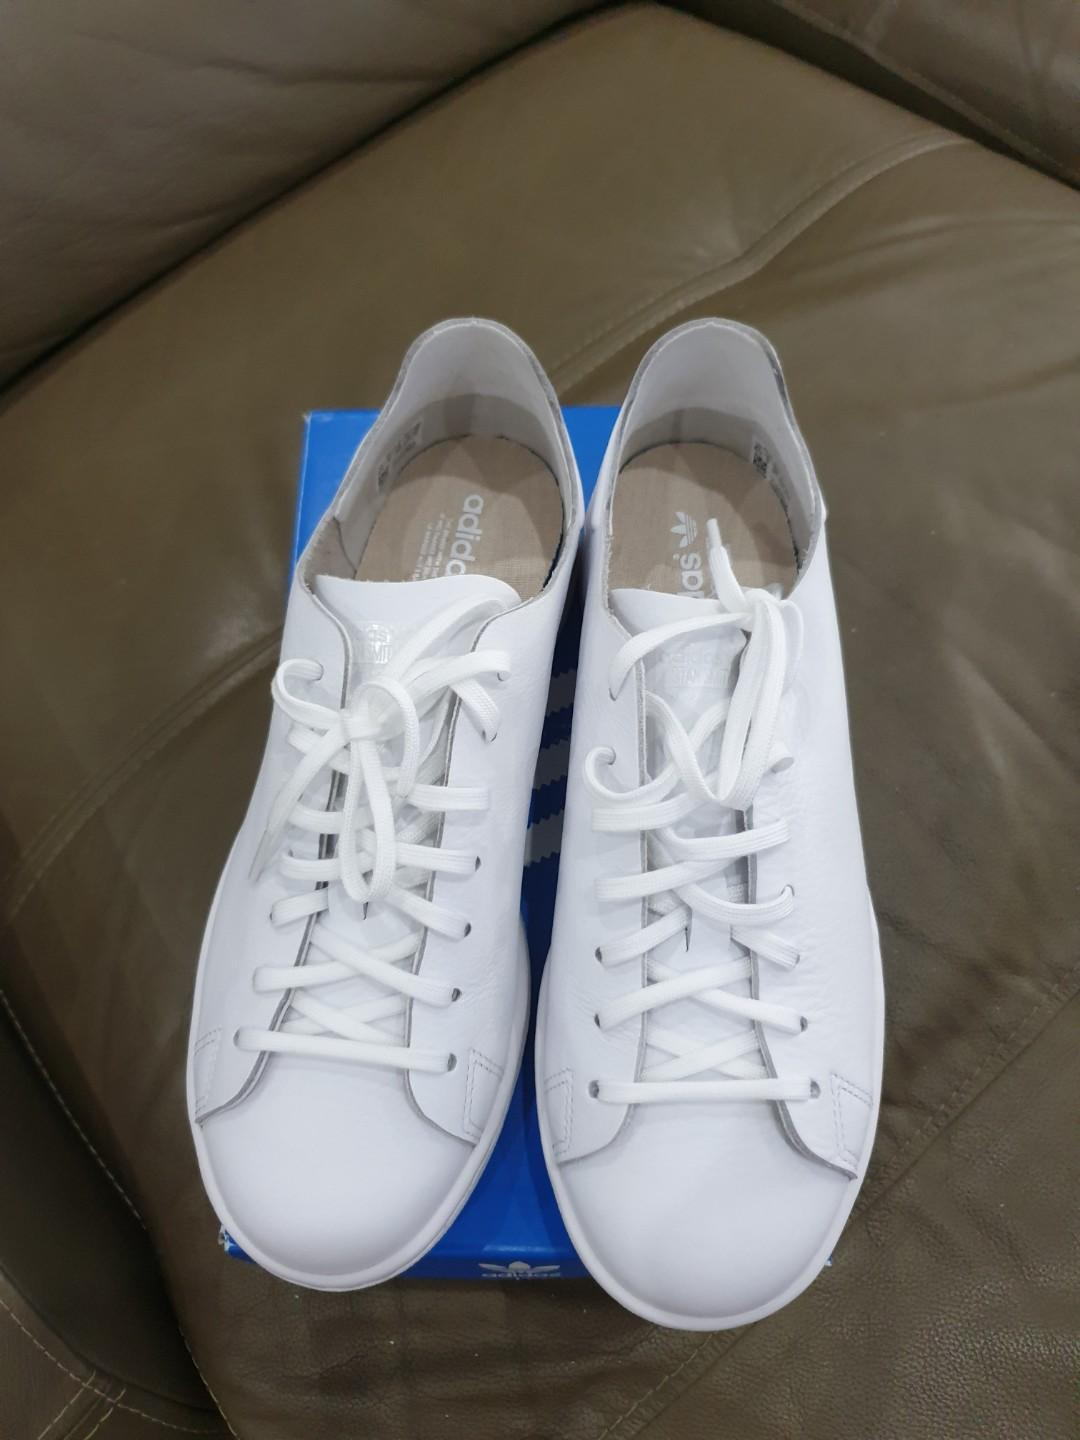 buy online 38d89 e6e9b Adidas Stan Smith Nuud White, Women's Fashion, Shoes, Others ...